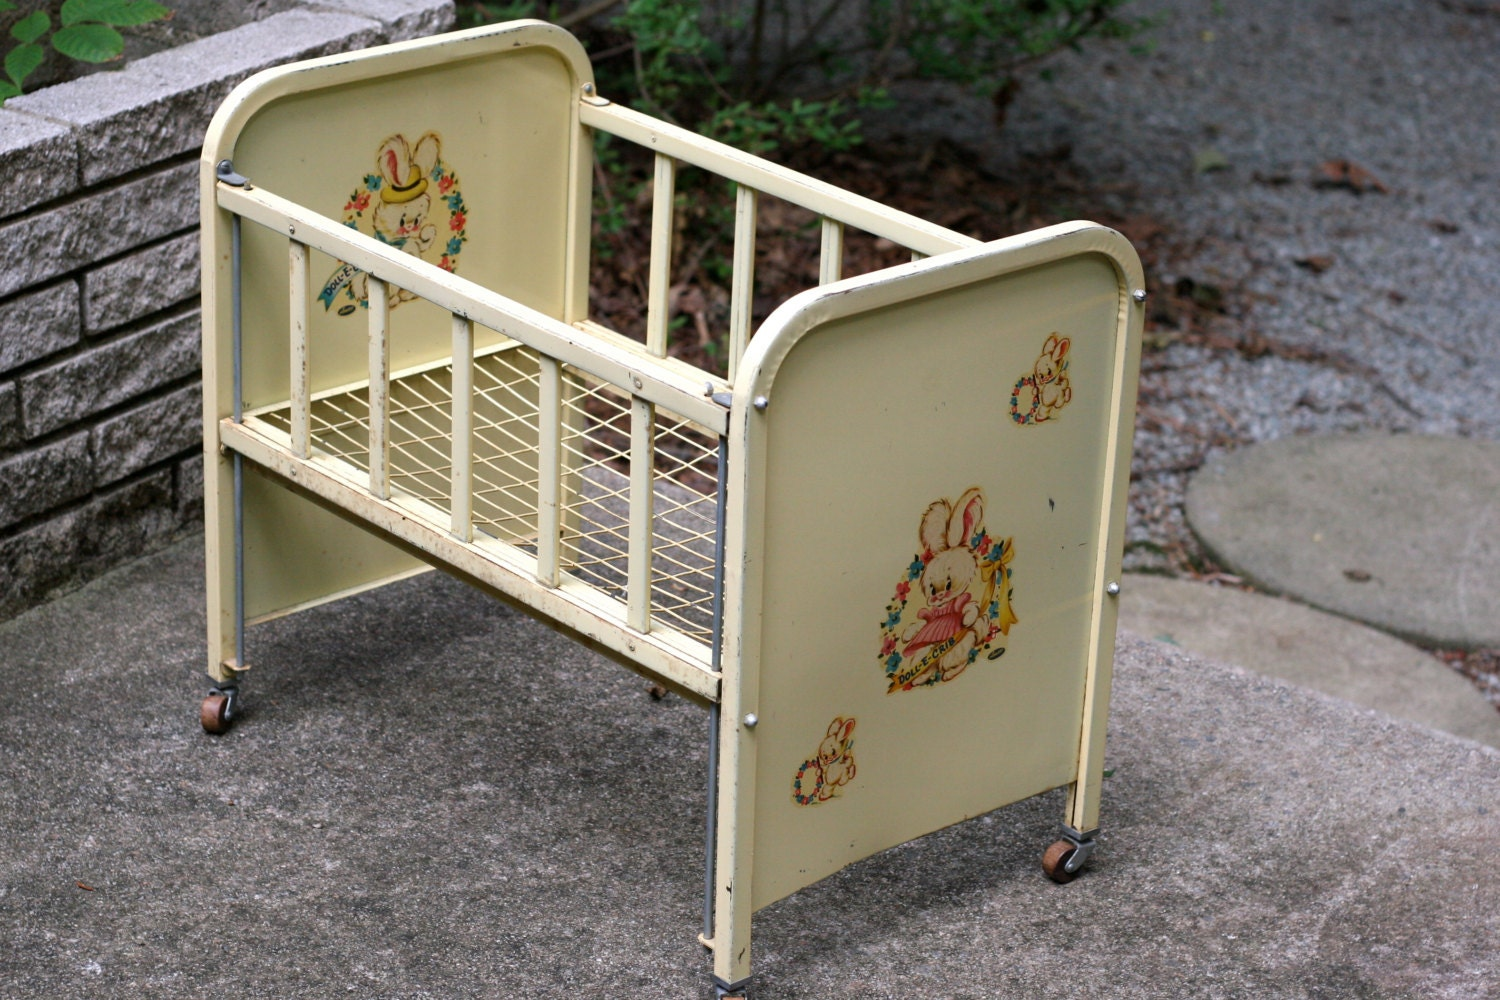 metal baby cribs for sale - 28 images - untitled document ...